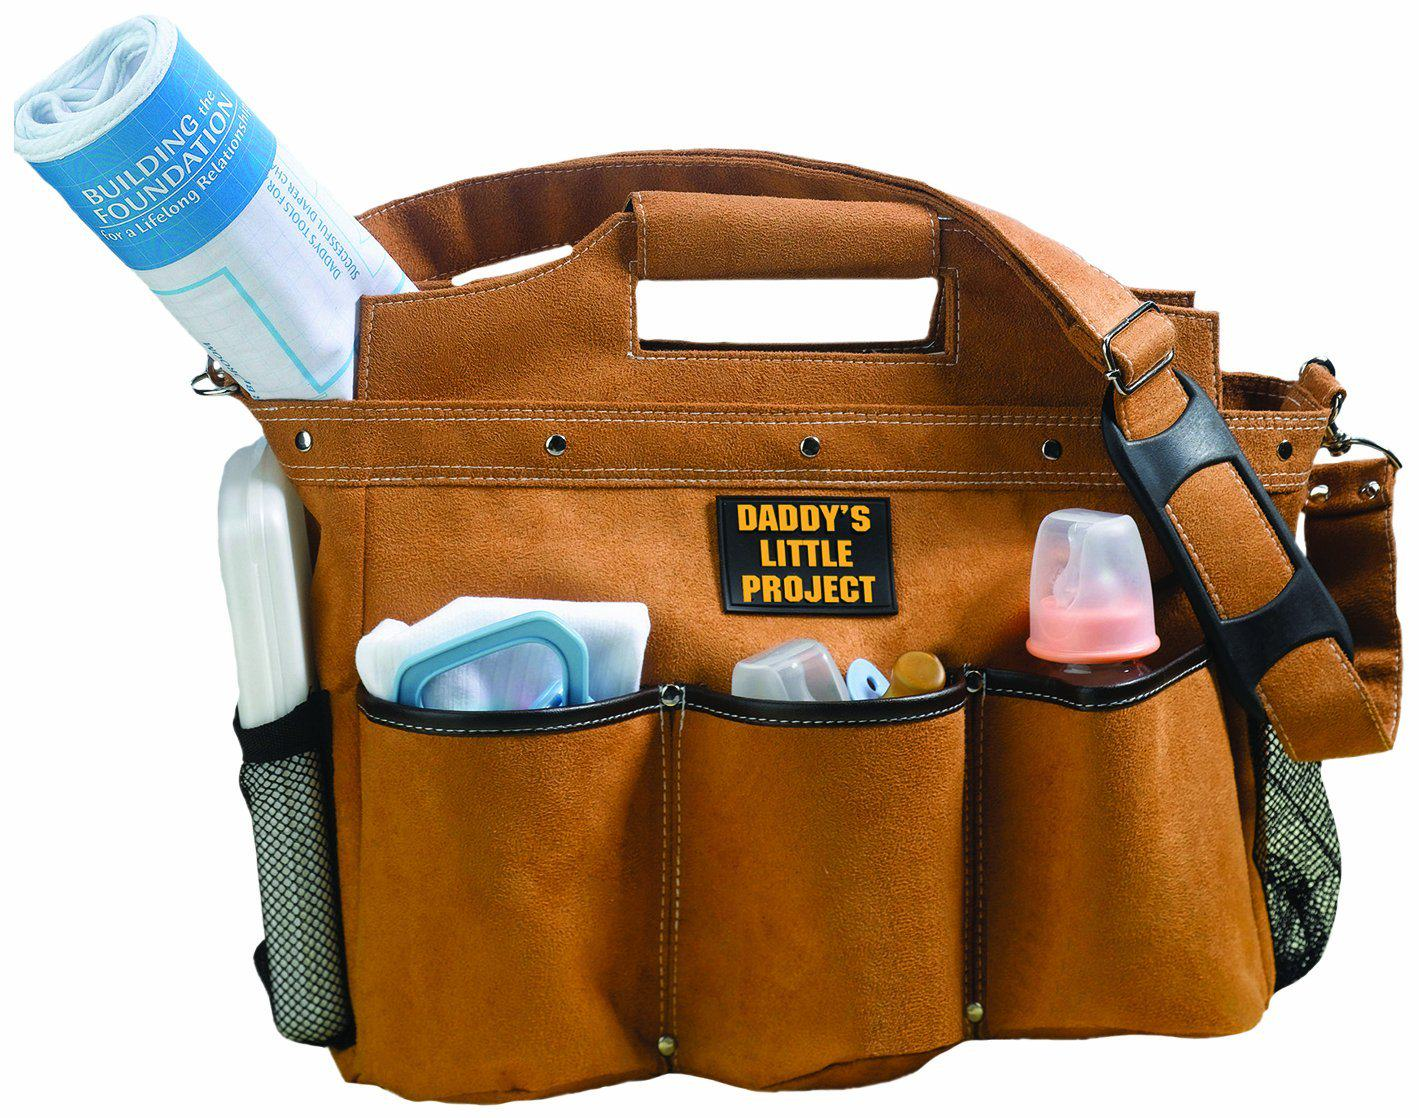 Pool Dads Canada Moms Diaper Bags Dads Diaper Bags Dads On Day Diaper Bags baby Diaper Bags For Dads